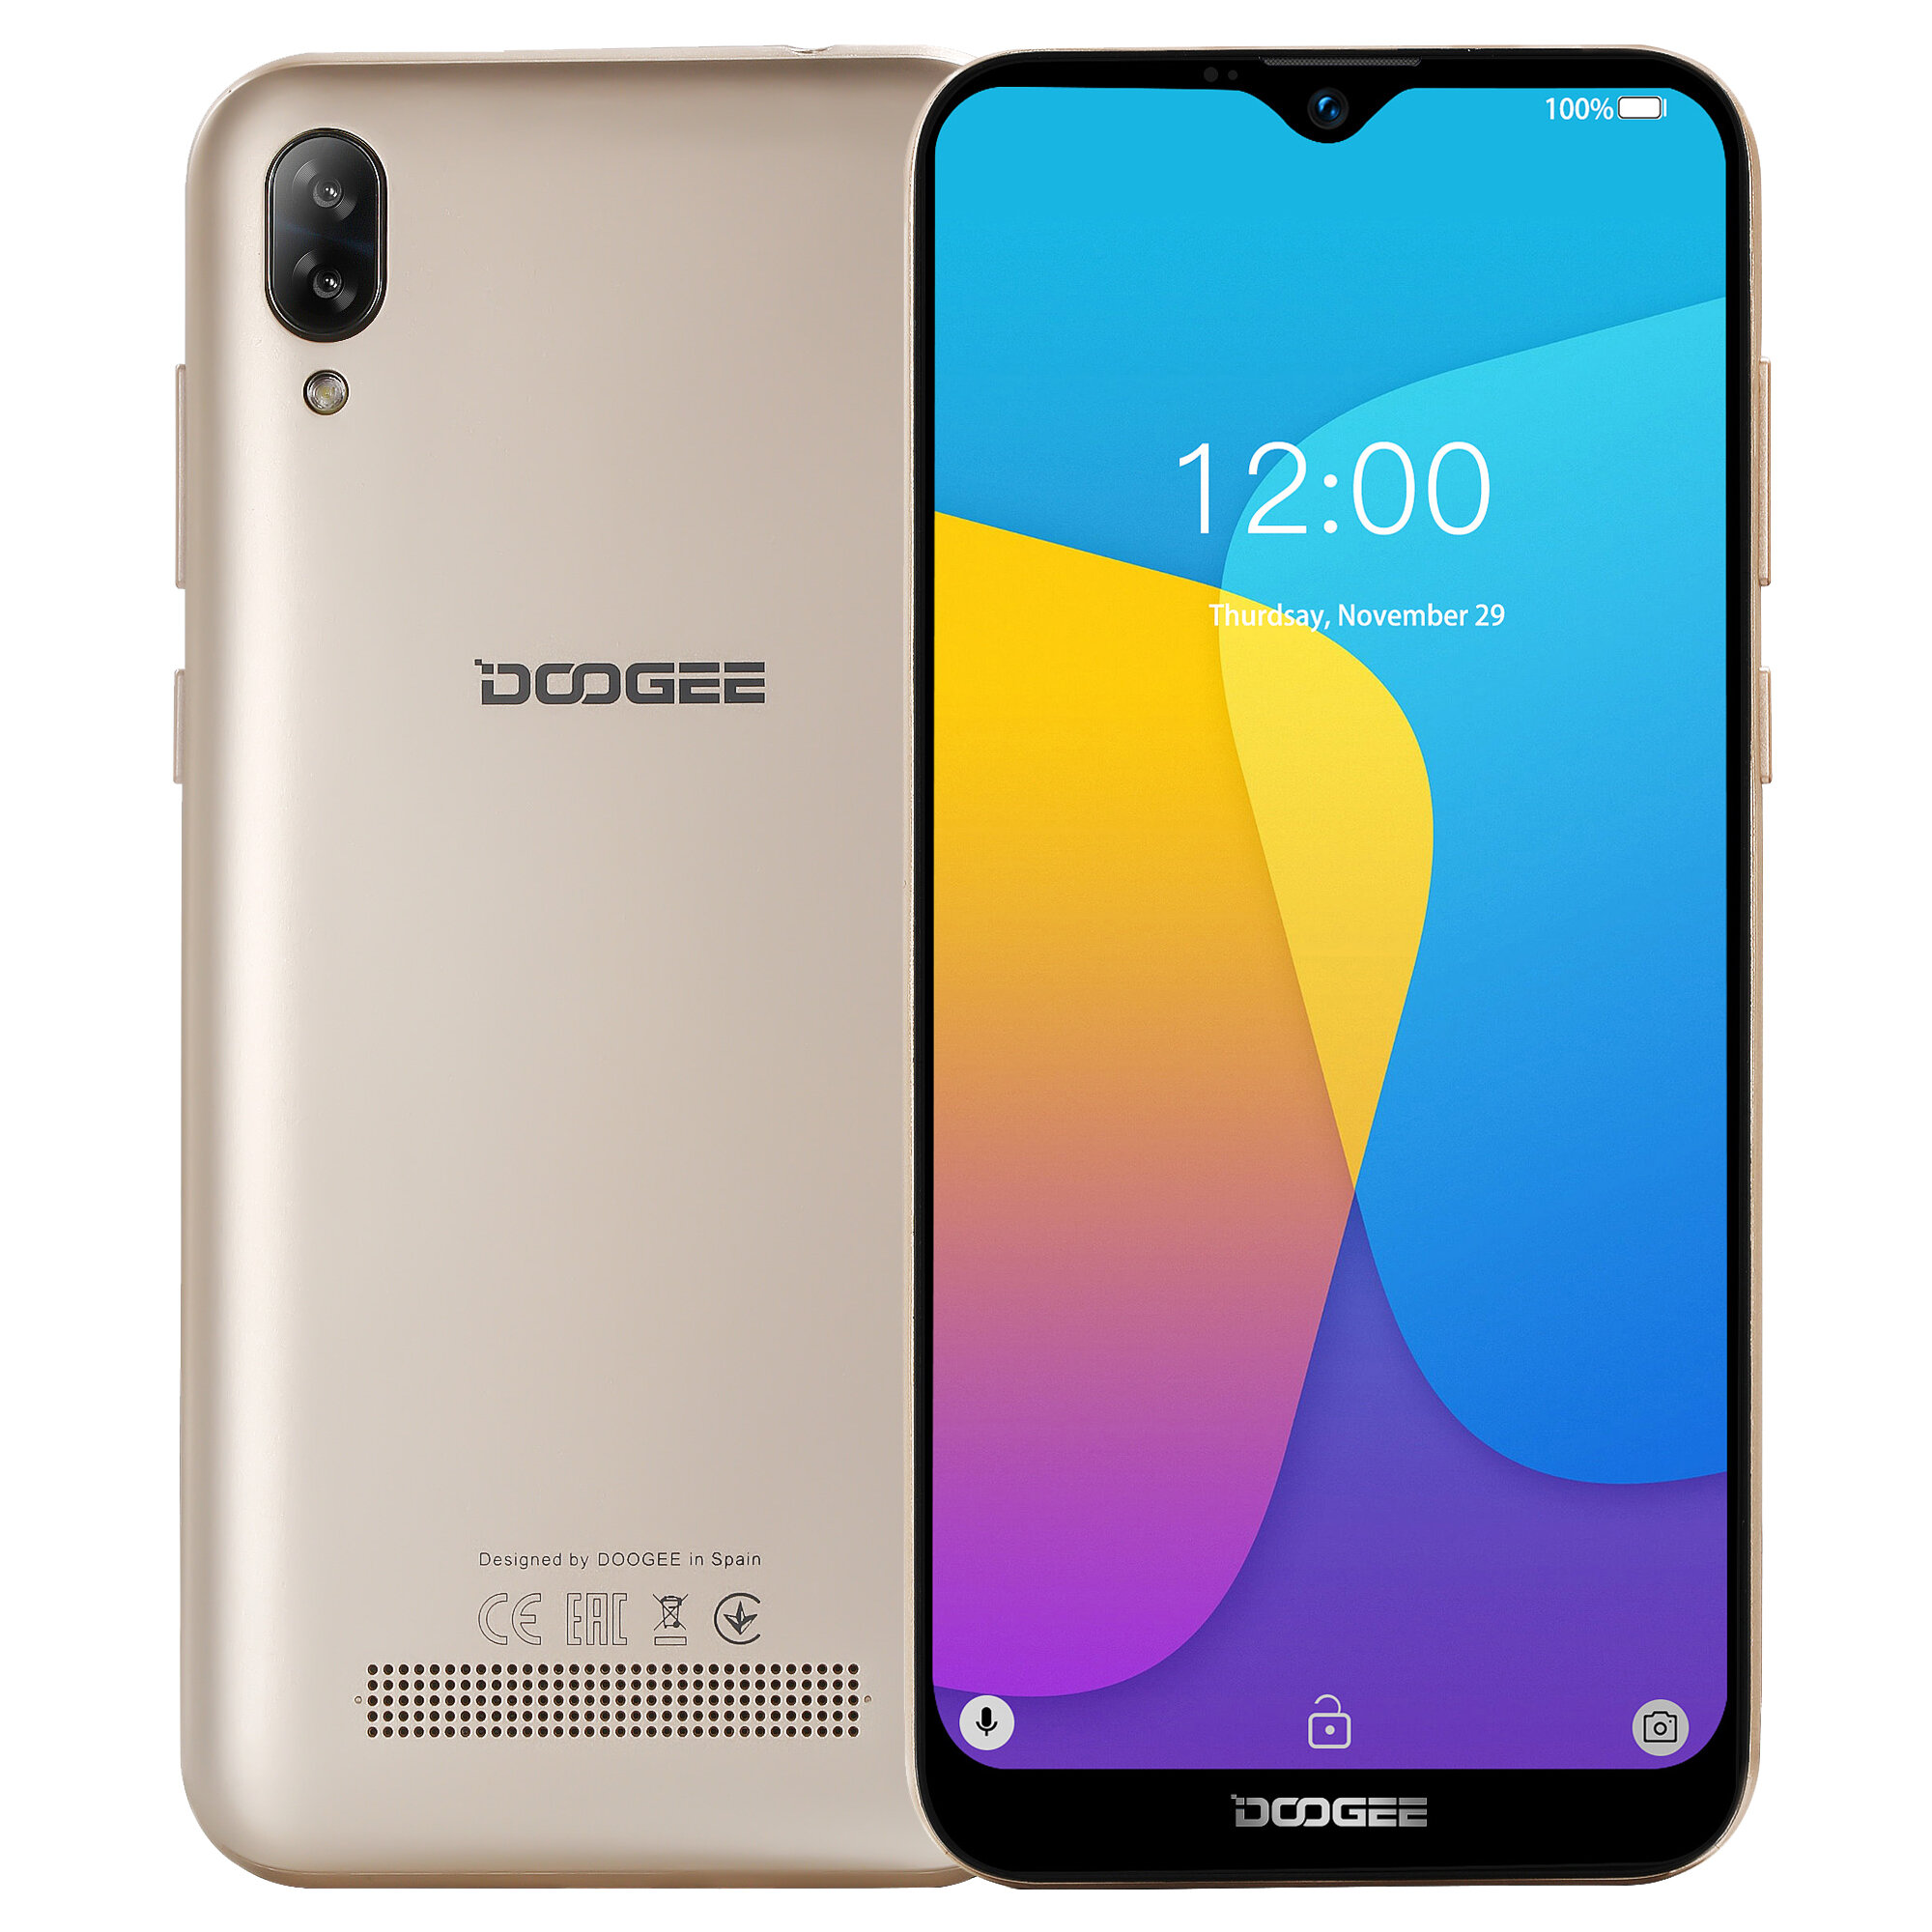 GOME U7 Global Rom 5.99 inch FHD+ NFC Iris Recognition 13MP Dual Front Camera 4GB 64GB Helio P25 4G Smartphone - 7